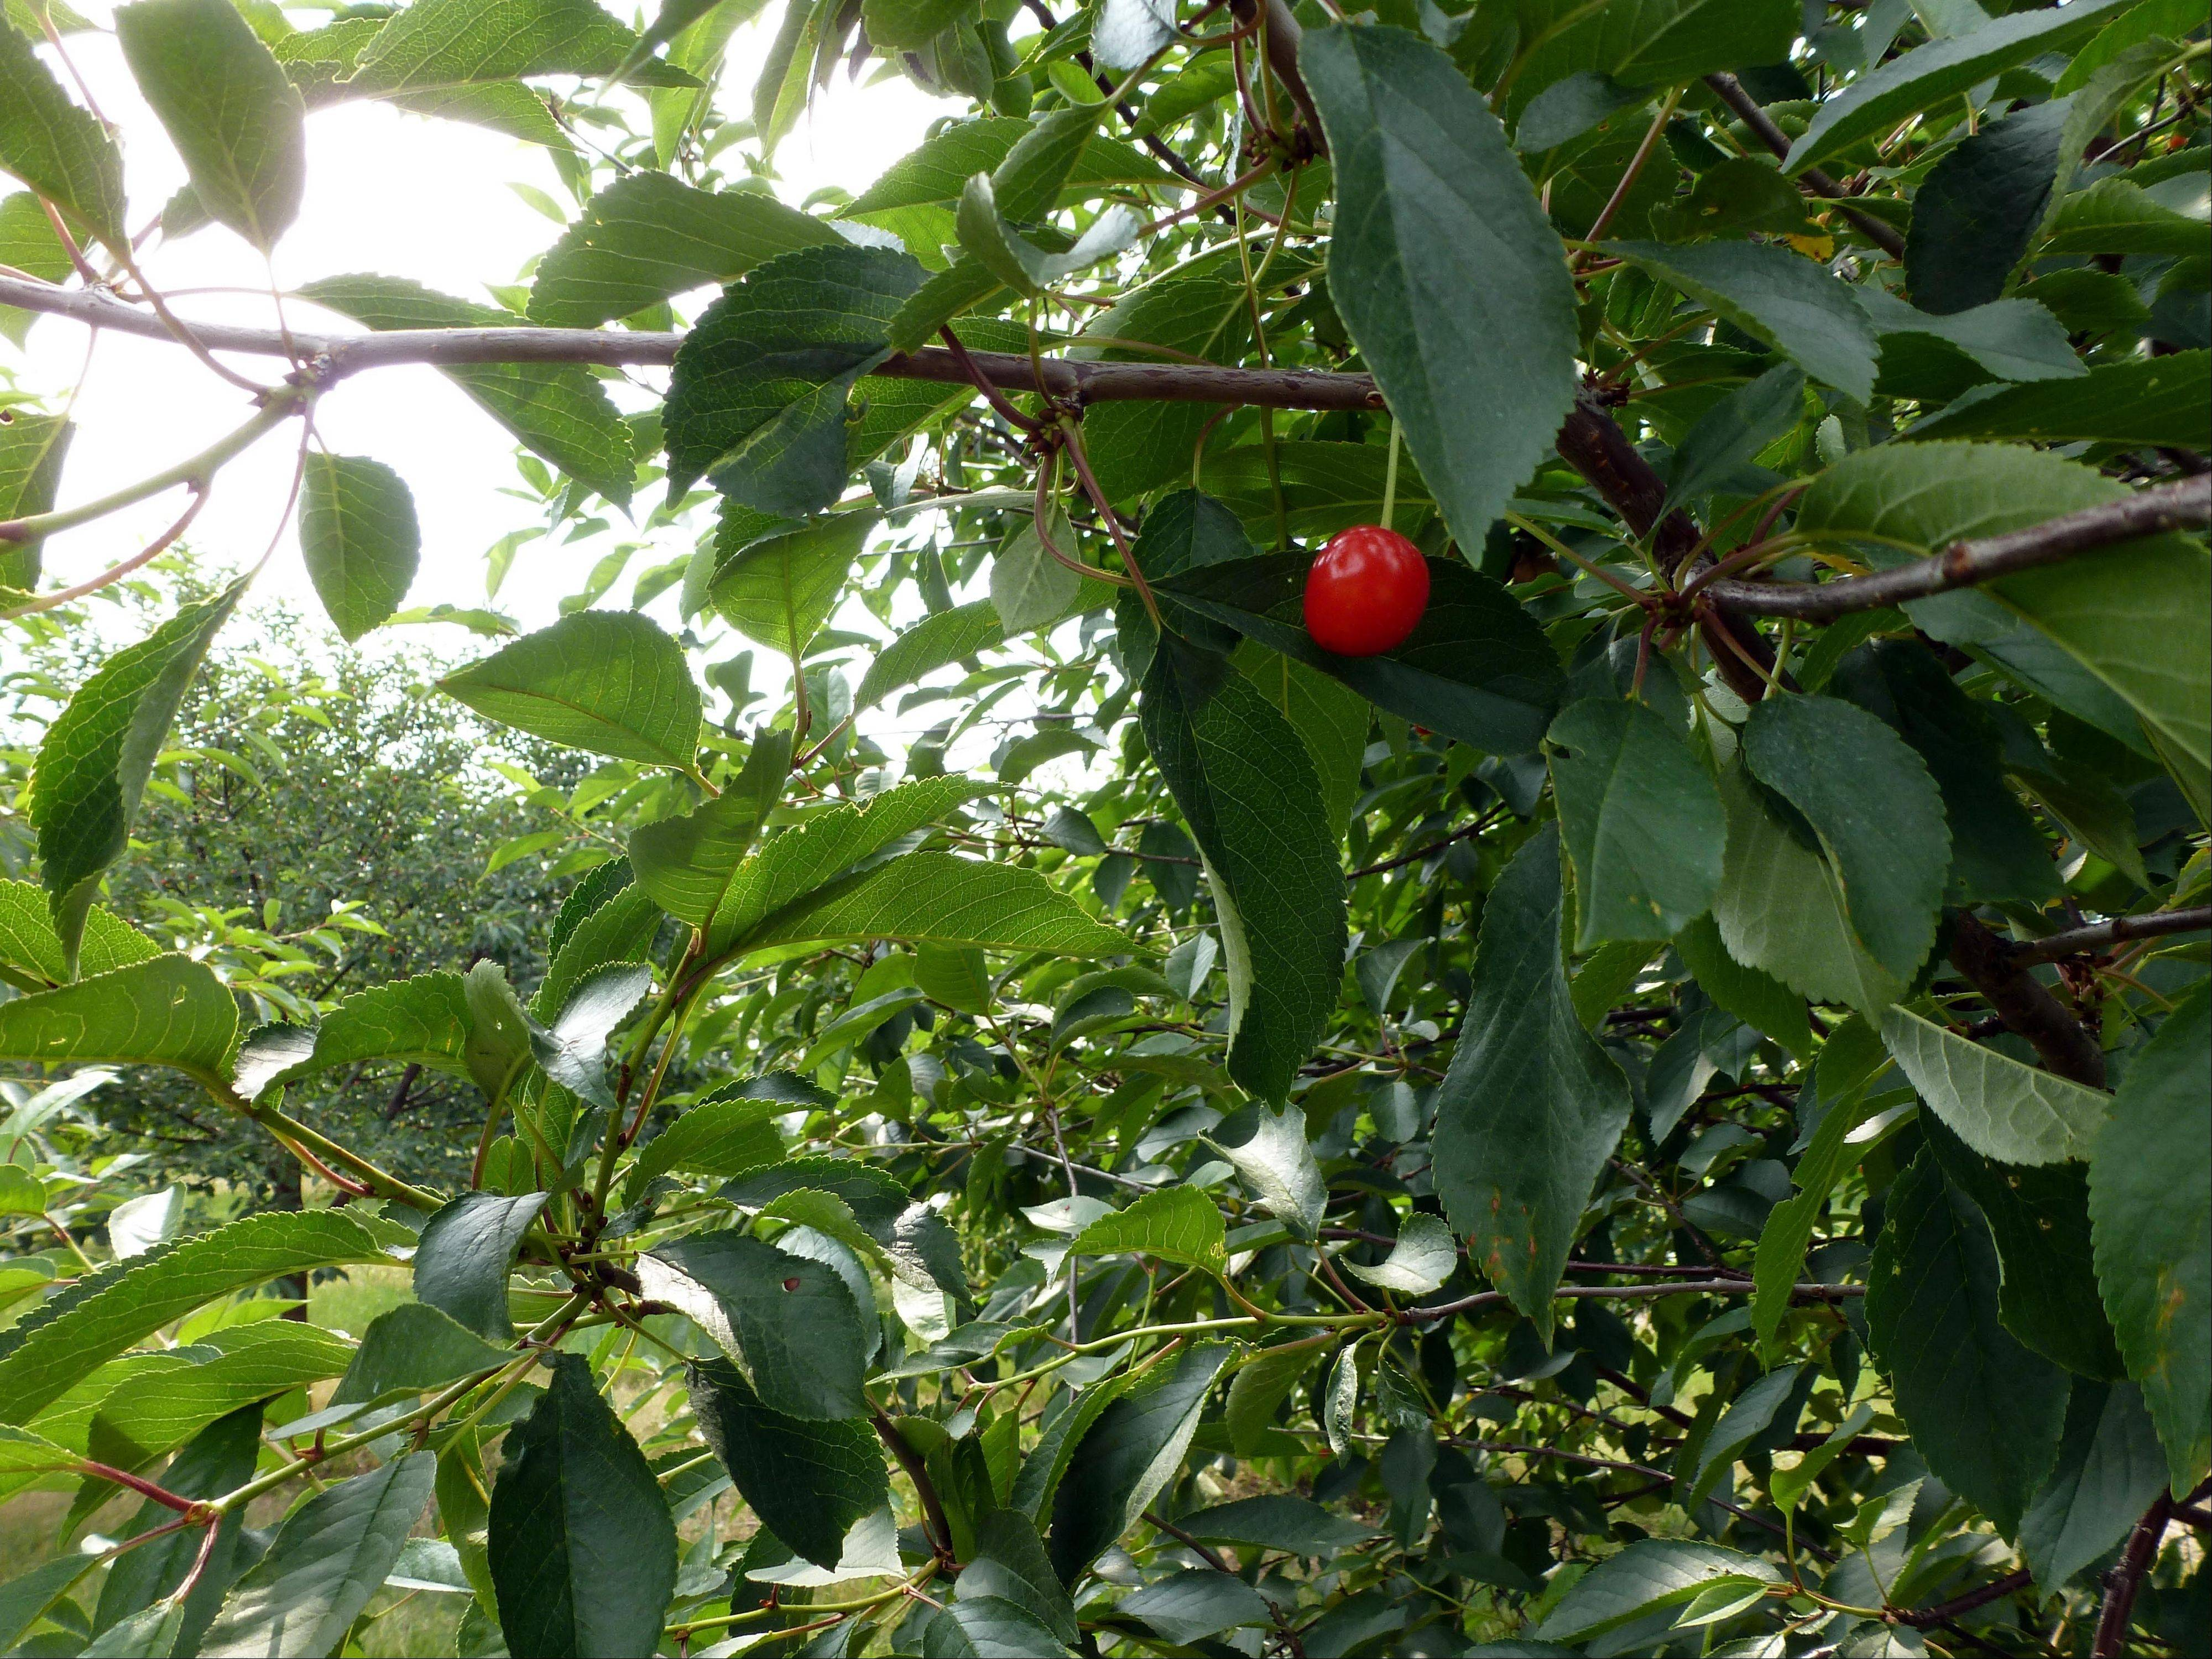 In this June 28, 2012, a cherry hangs on a tree on with very few other cherries in the orchards of Seaquist Orchards in Sister Bay, Wis. The company only expects to get about 10 percent of a full crop this year after frost got the buds that developed early from a warm winter and spring.